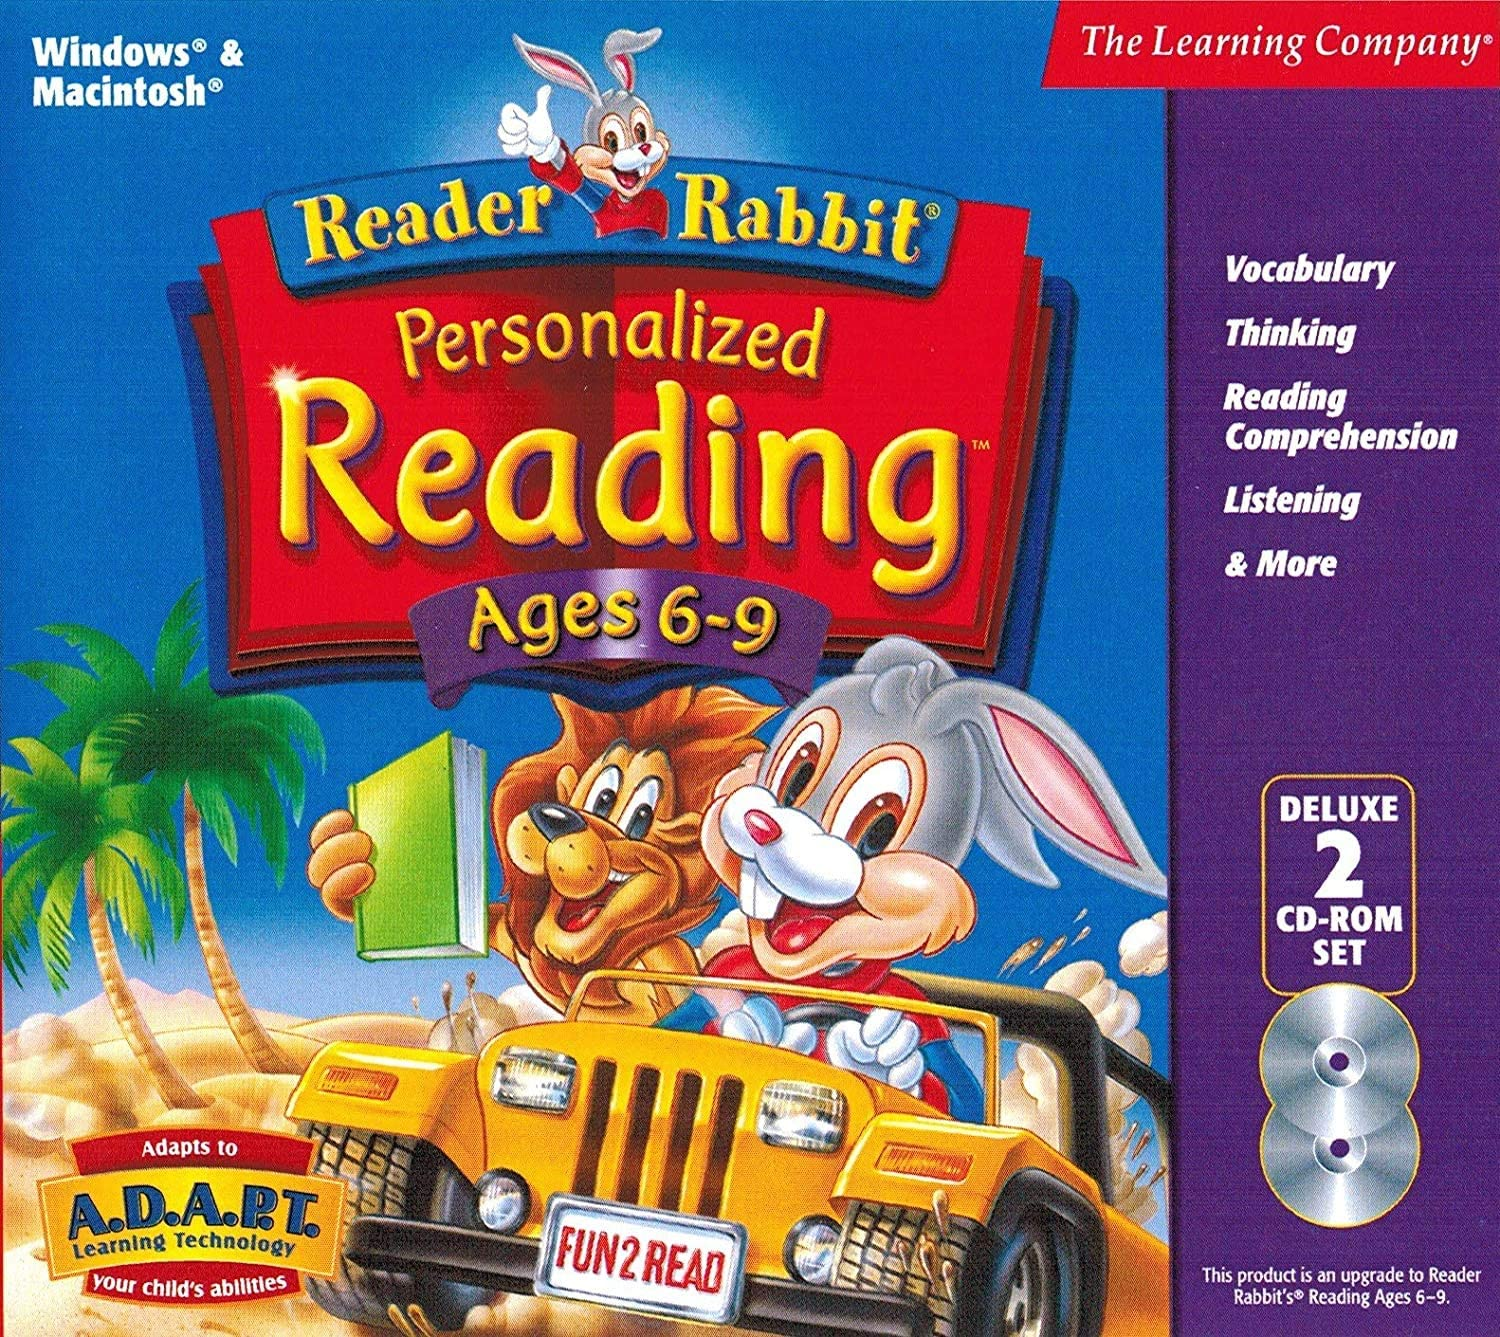 Learning Company Reader Rabbit Personalized Reading Ages 6-9 Deluxe 81oj0ohdMkL